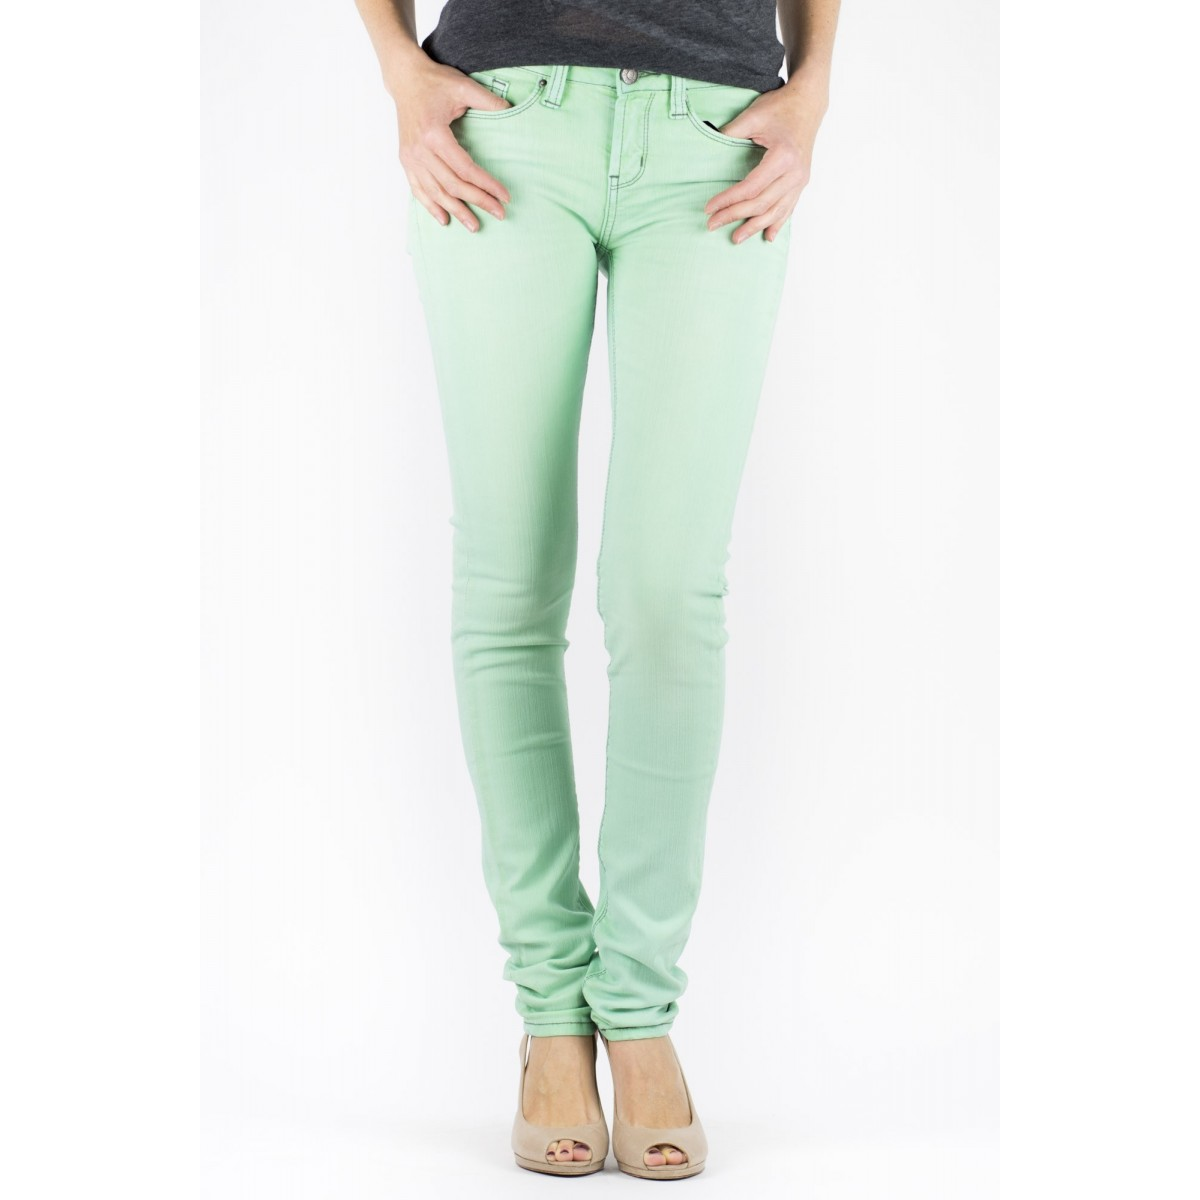 Jeans One Green Elephant Donna - Kosai  2340